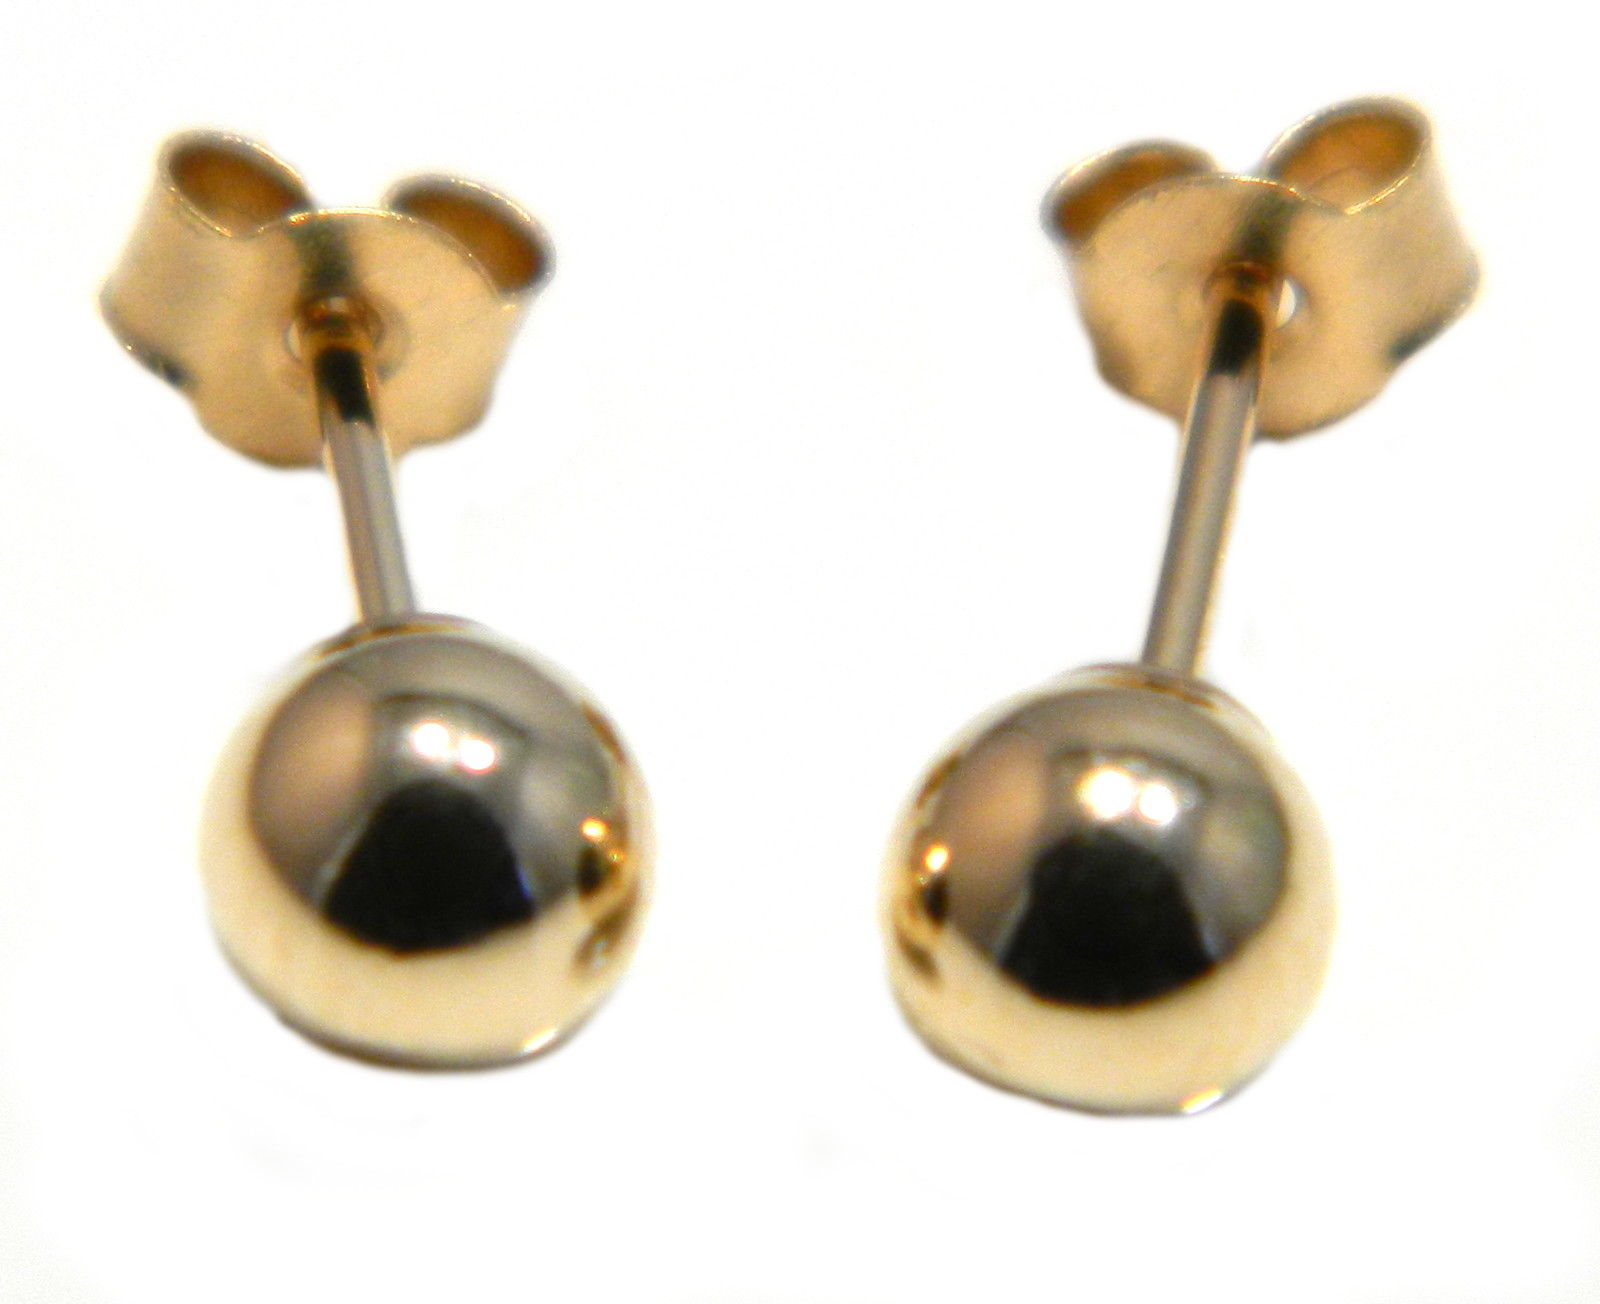 Arranview Jewellery Ladies 3 mm Gold Ball Stud Earrings in 9ct Yellow Gold 3ythcgBZB